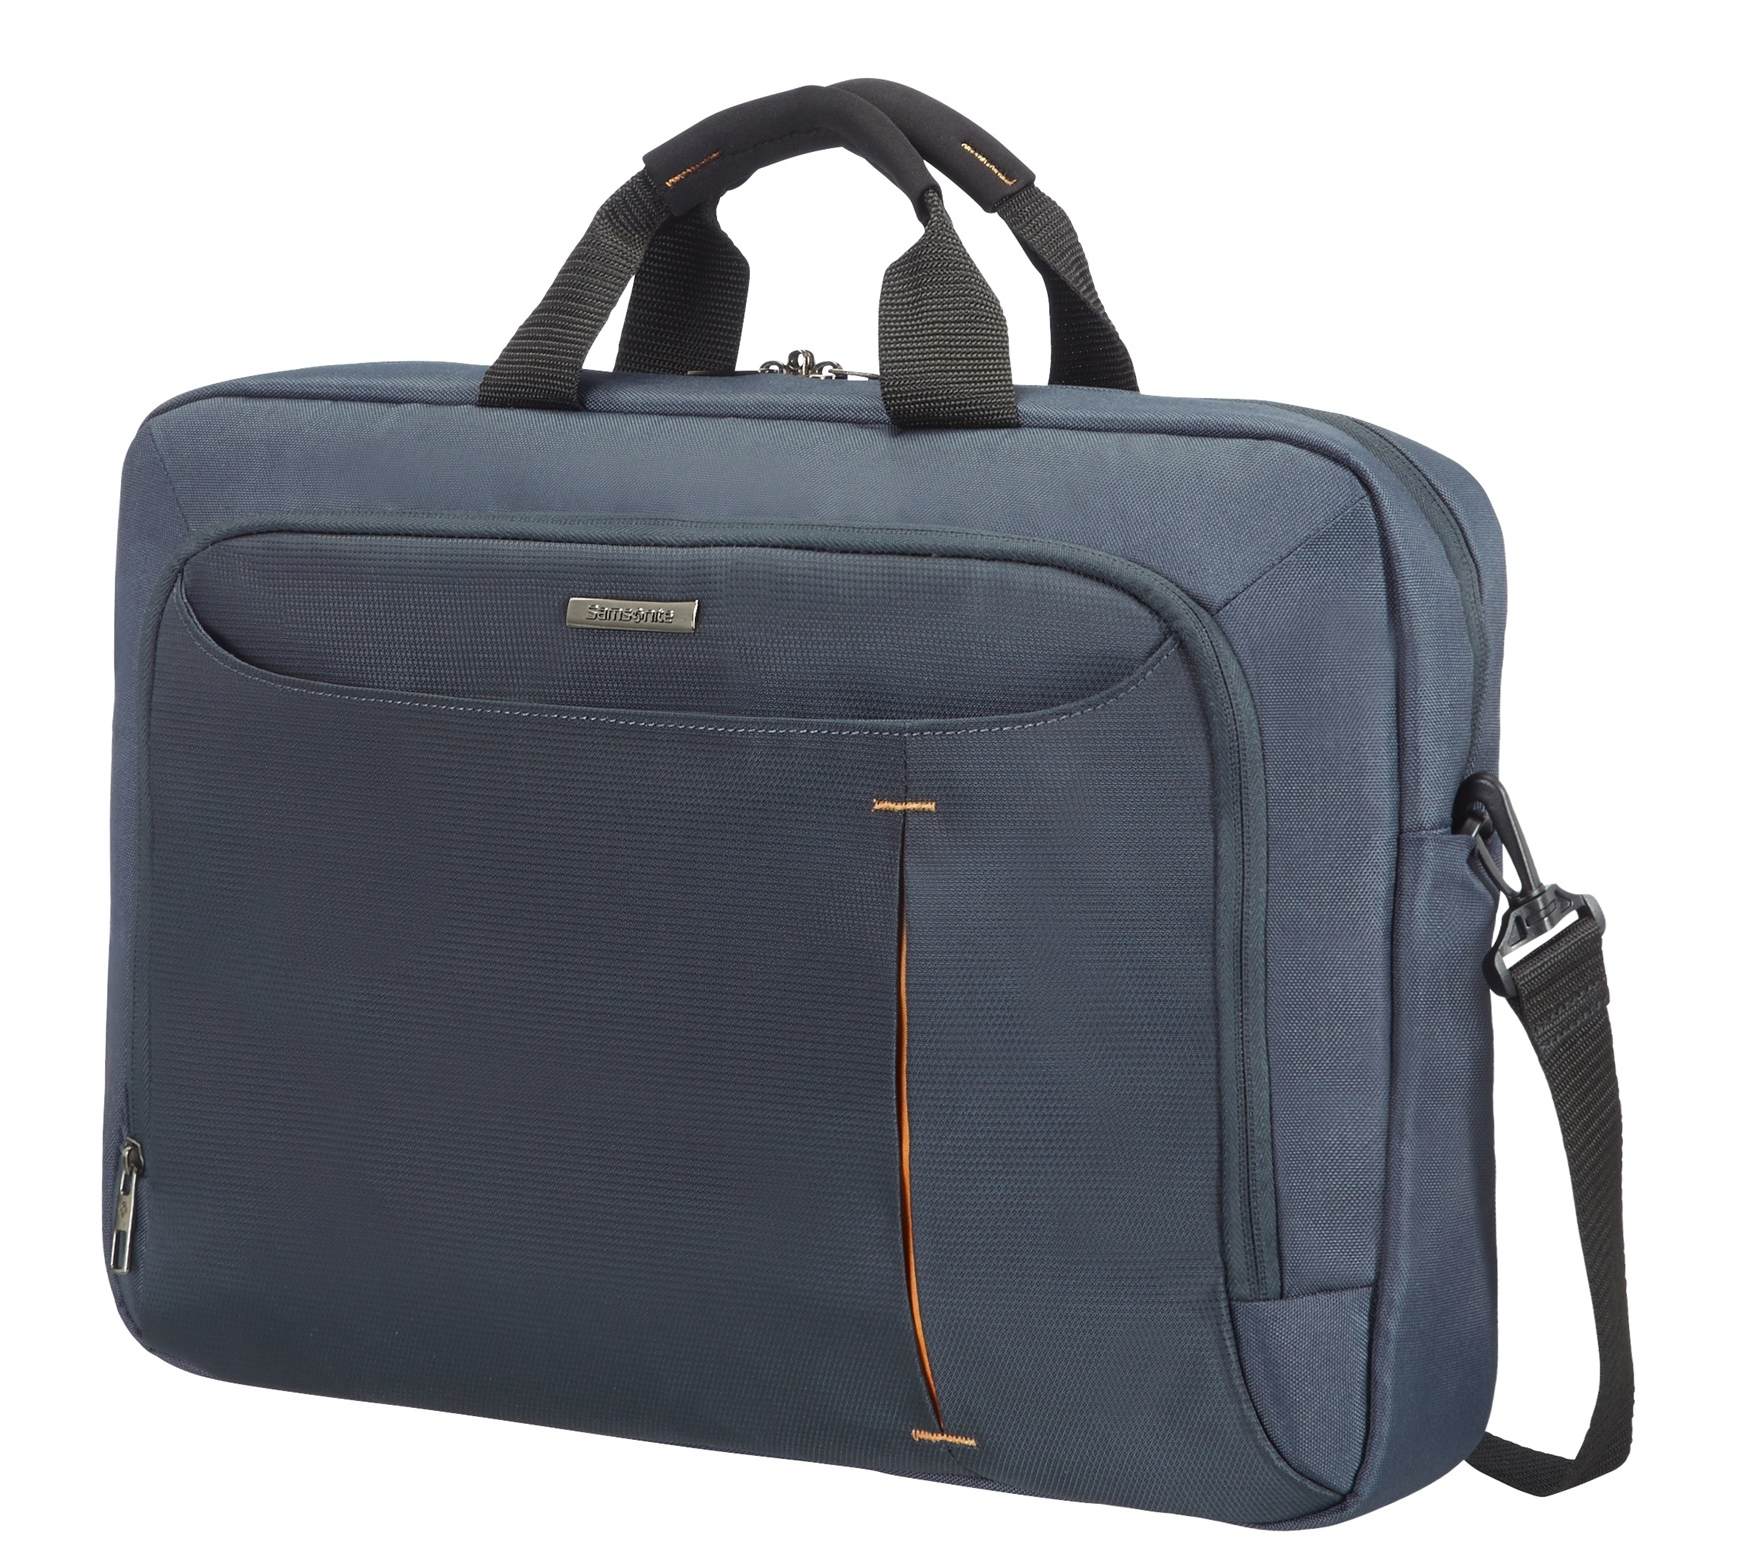 SAMSONITE - BORSE NOTEBOOK - 5414847545276